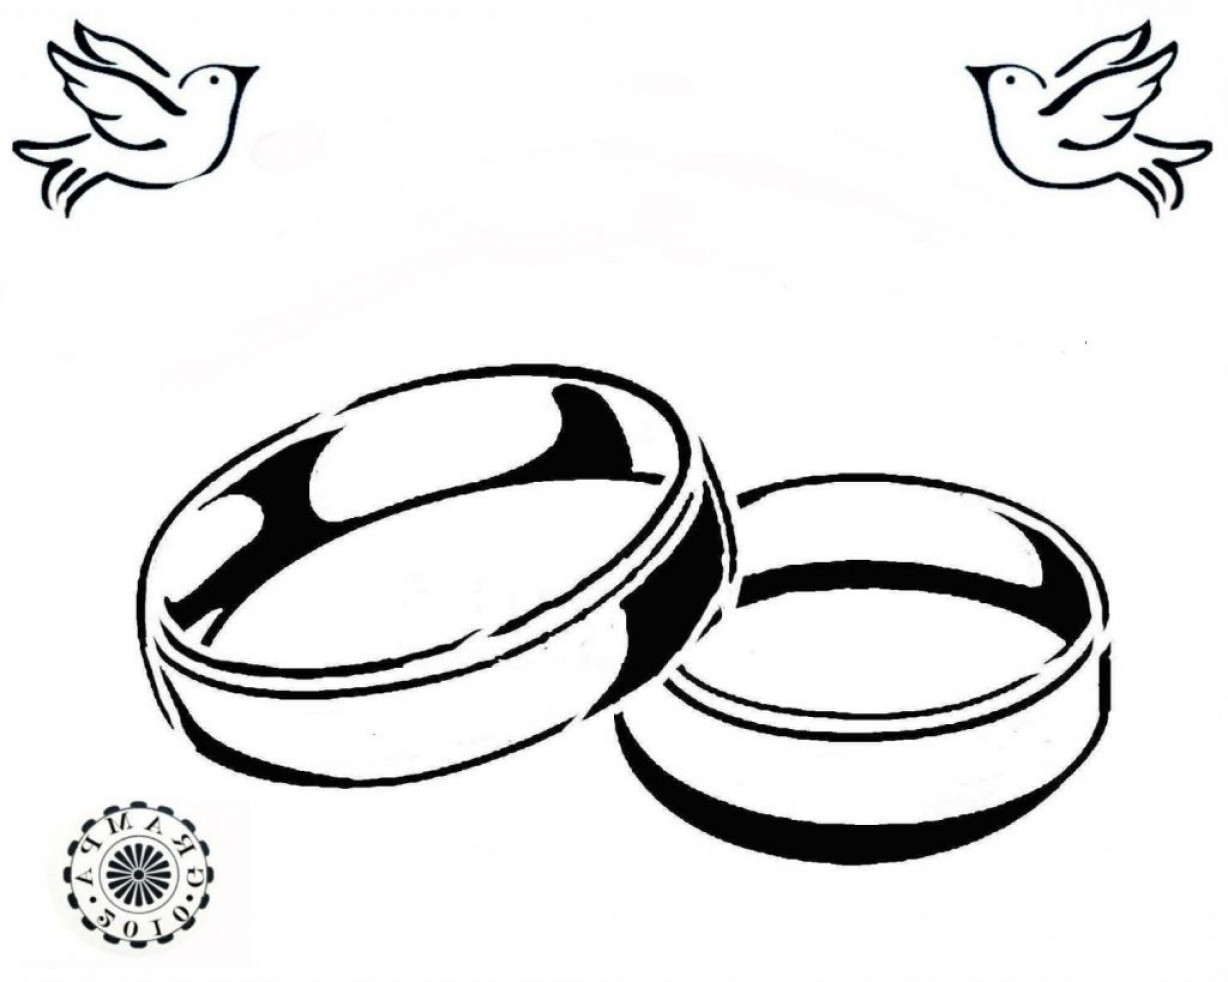 1228x982 Drawn Ring Marriage Ring Pencil And In Color Drawn Ring Marriage